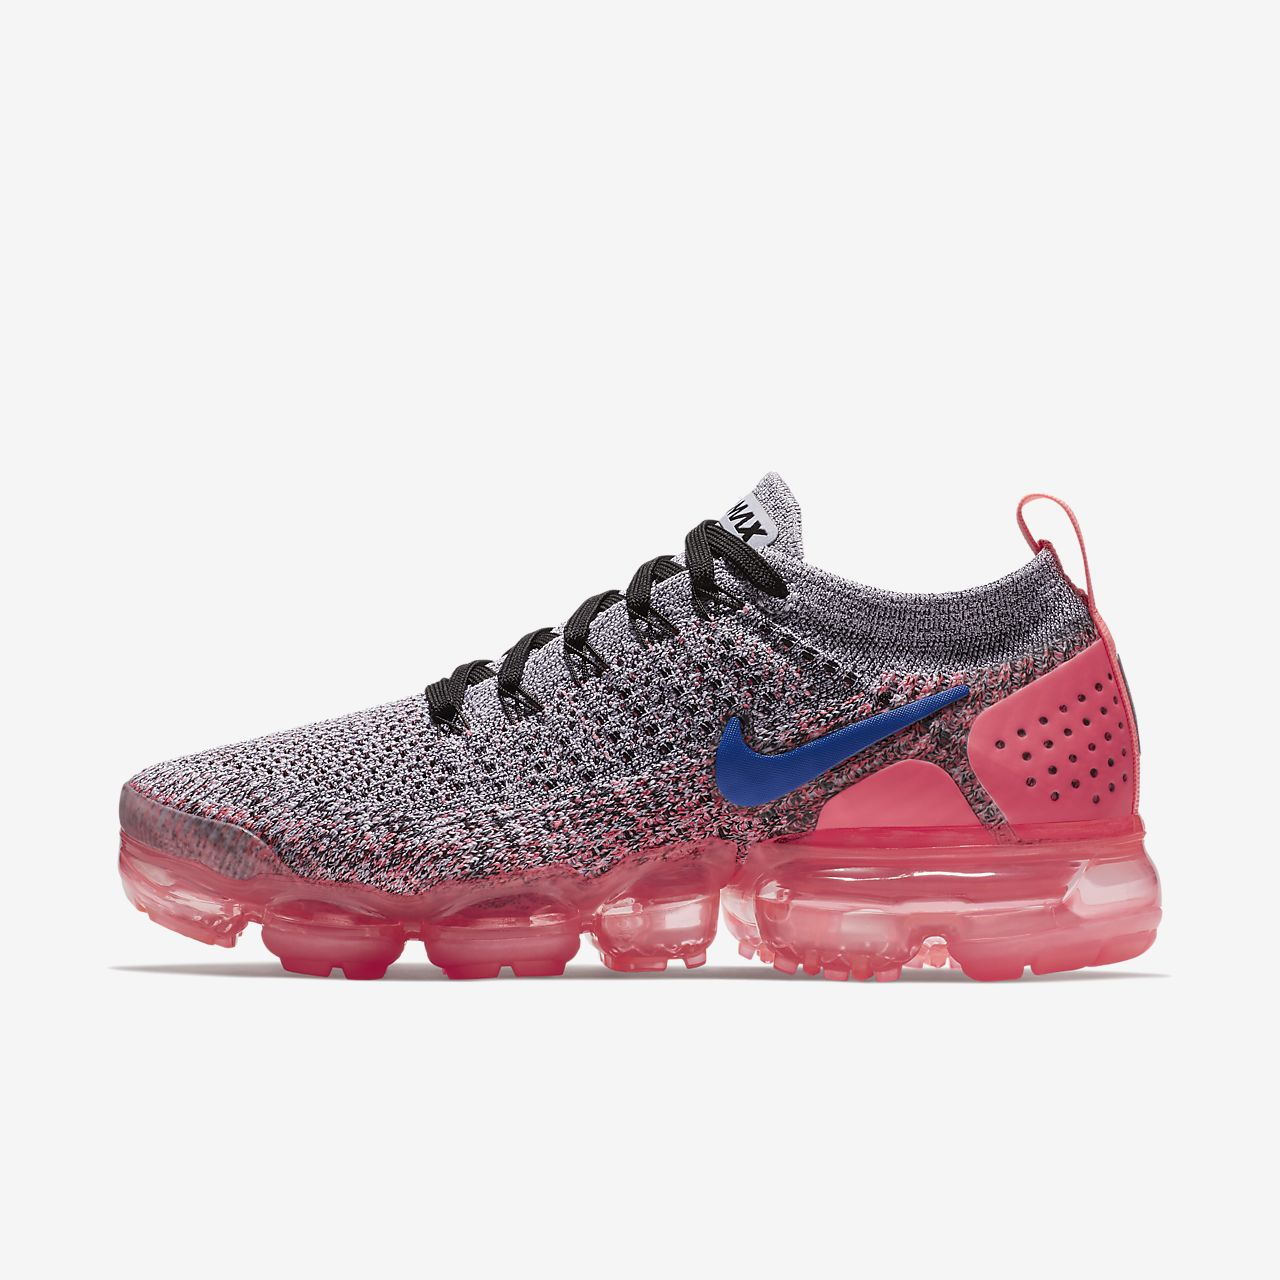 huge discount ec3a7 160ef nike air vapormax flyknit donna prezzo basso